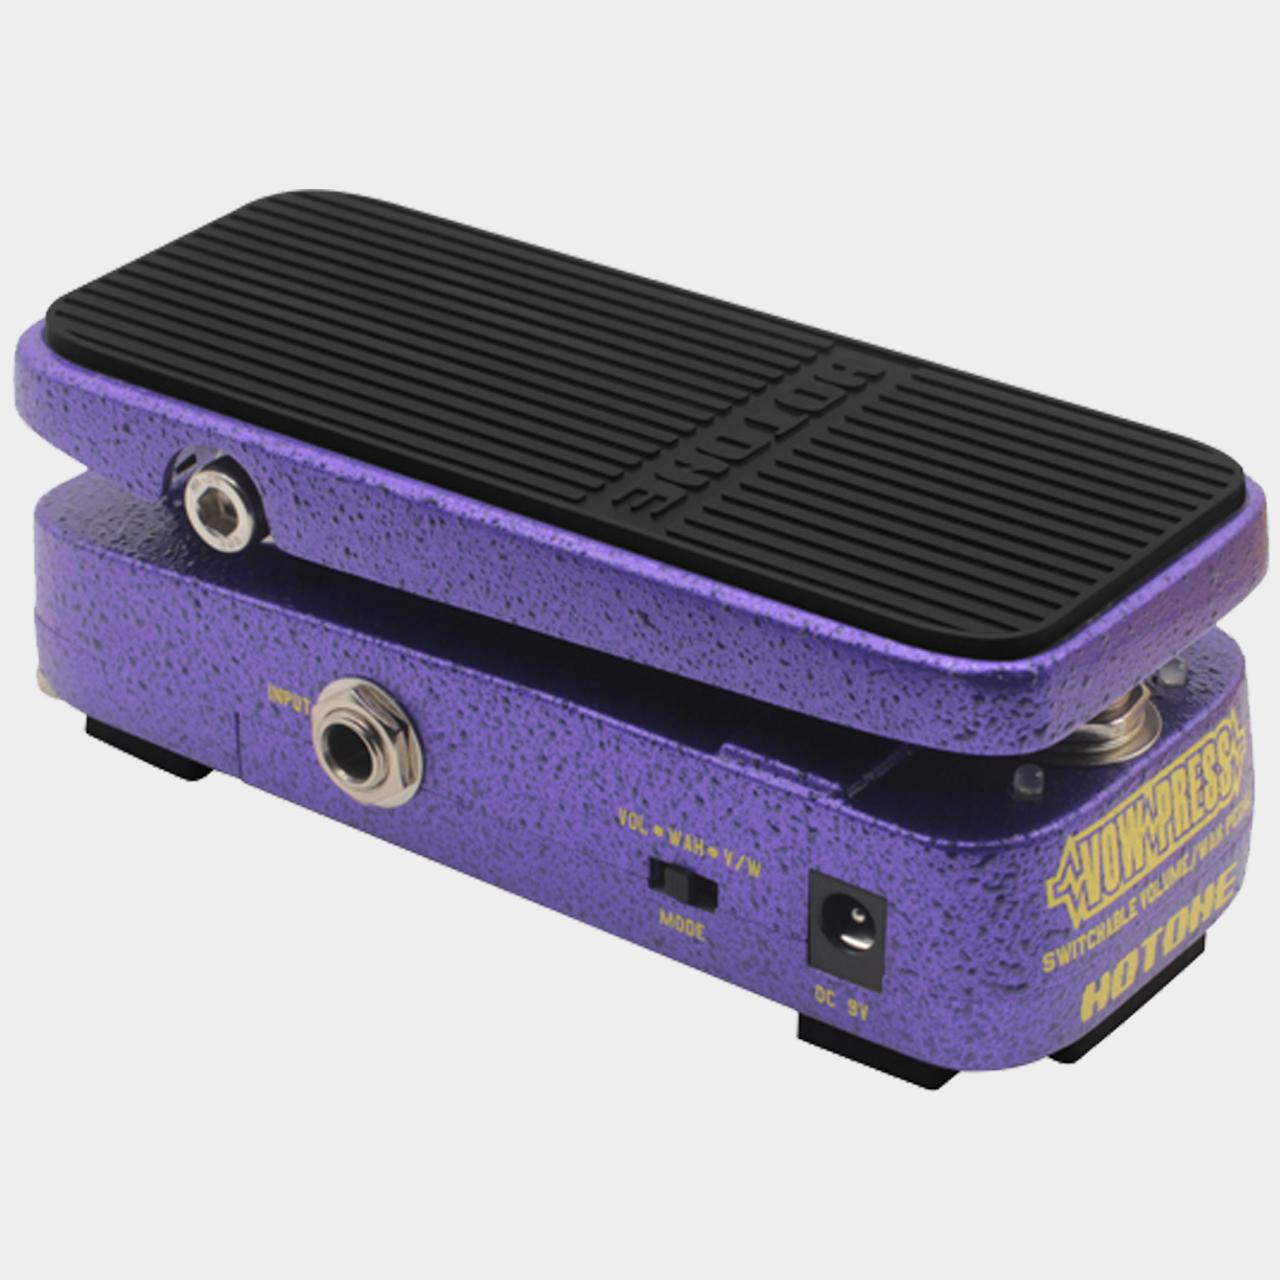 HOTONE Vow Press Wah/Volume Pedal